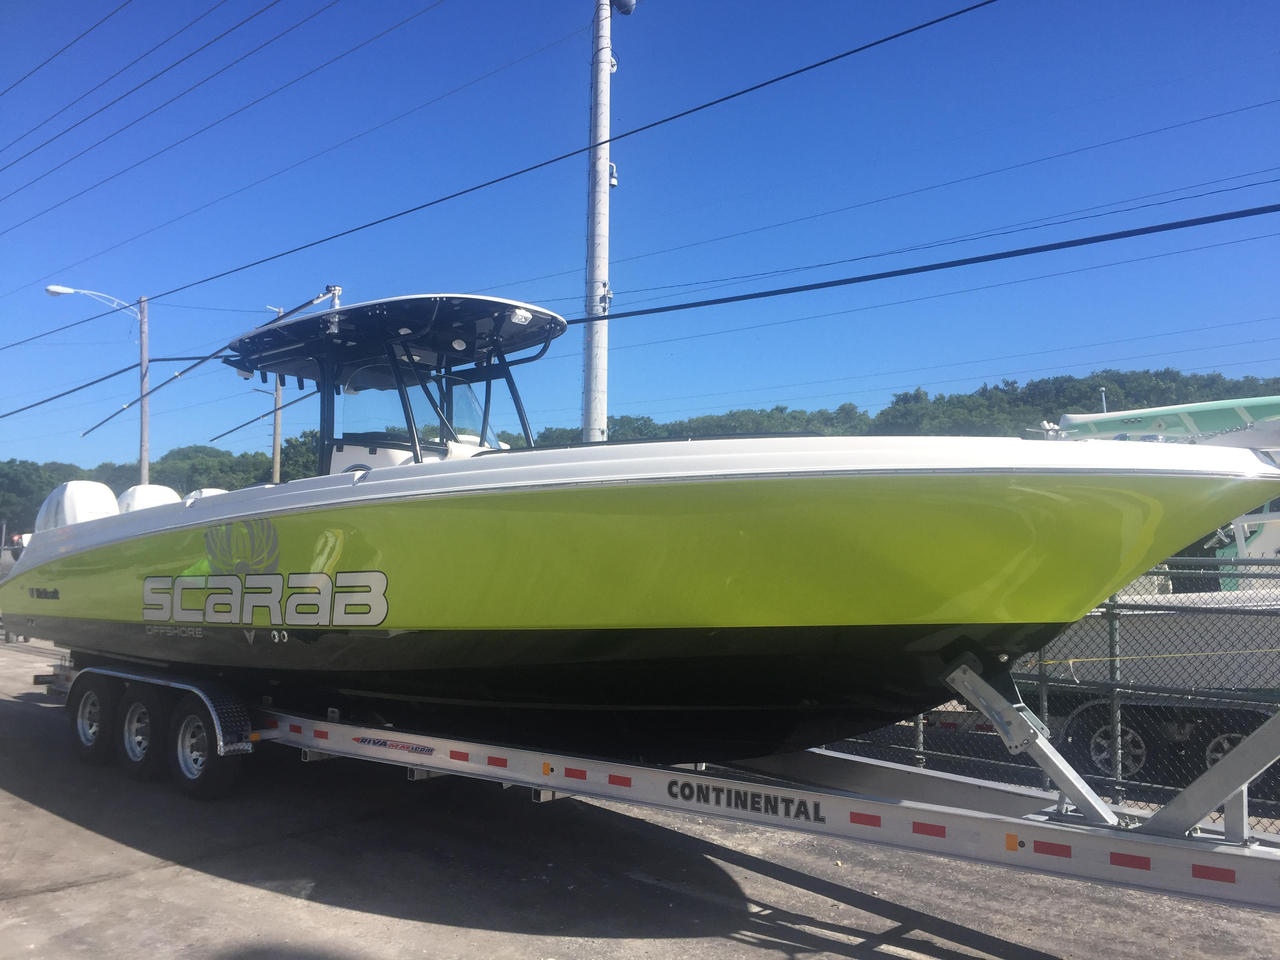 2017 new wellcraft 35 scarab offshore tournament center for Tuna fishing boats for sale